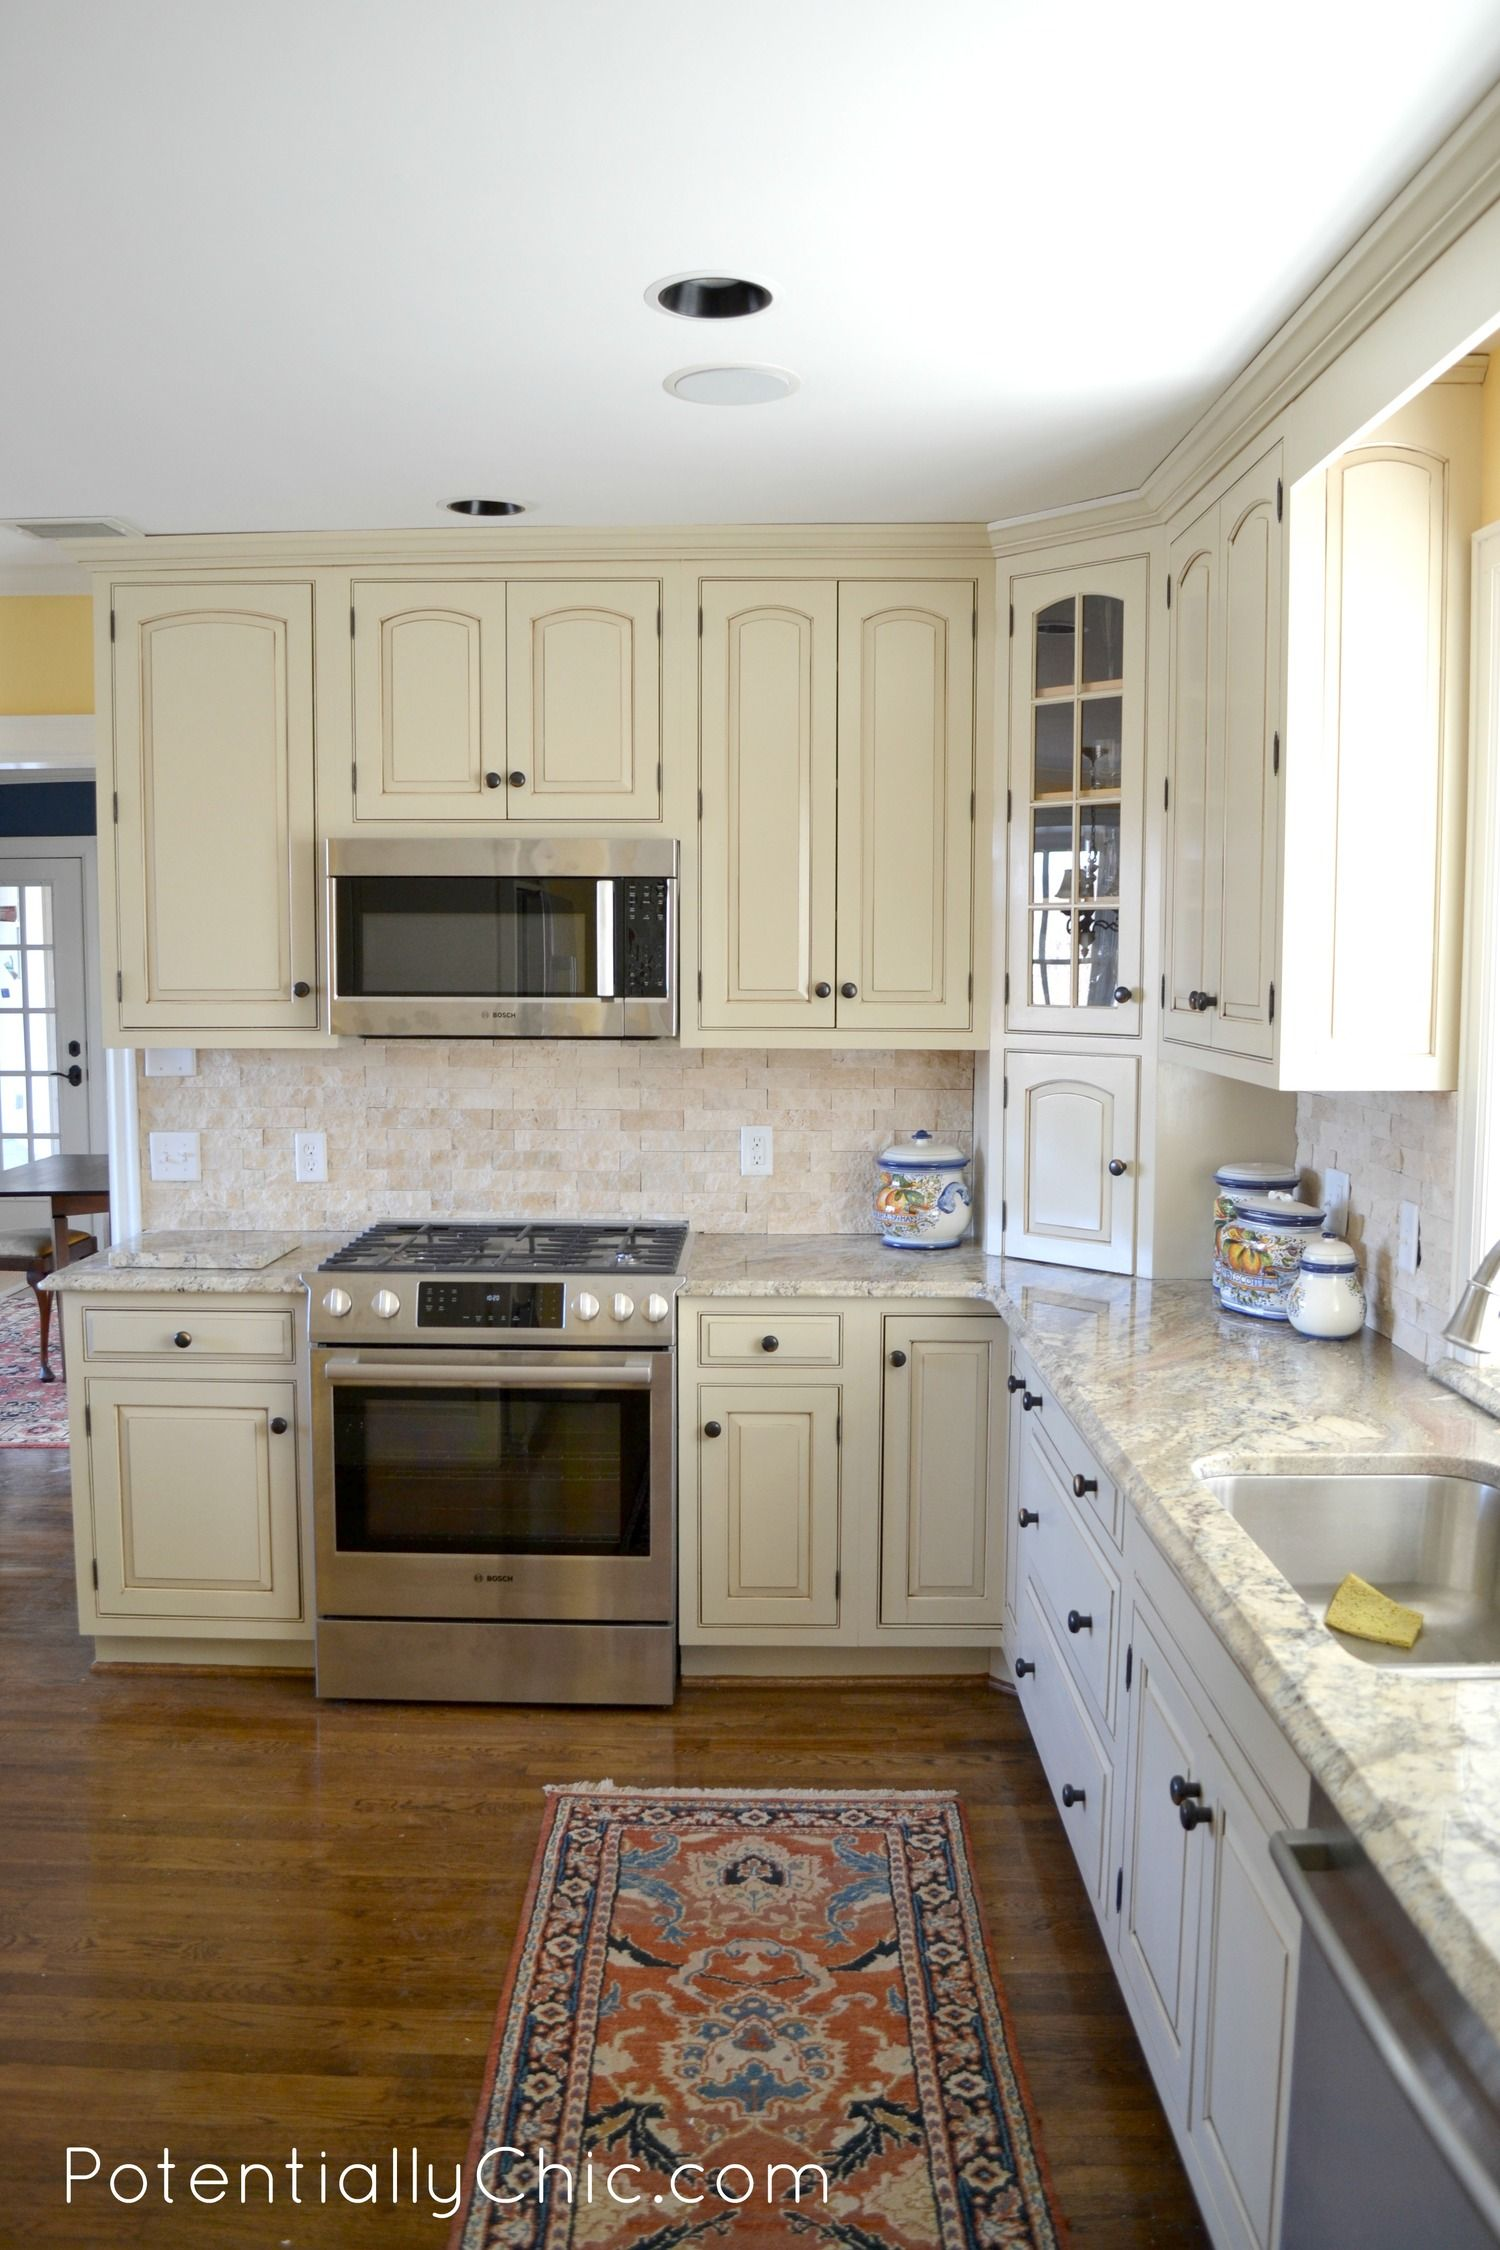 Best Kitchen Gallery: Boone Kitchen Cabi S Linen After General Finishes Potentially Chic of General Finishes Milk Paint Kitchen Cabinets on rachelxblog.com